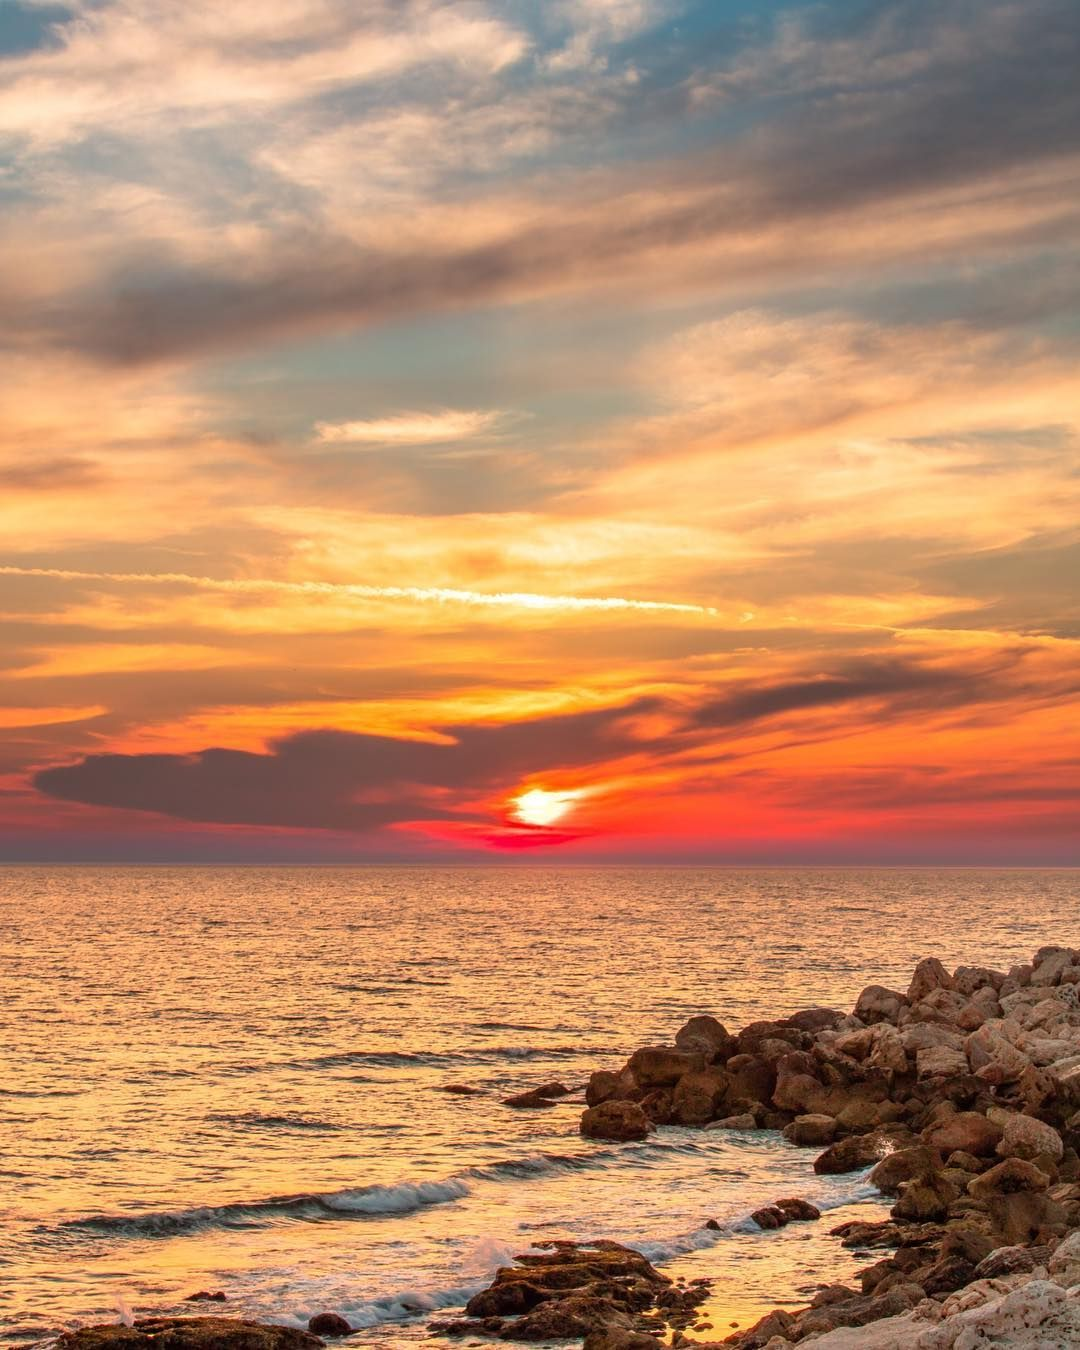 Byblos Lebanon Sunset Mediterranean Sea Beach Beautiful Horizon Sunsets Sky Clouds View Outdoors Happy Best Nature Photo Sunset Outdoor Clouds